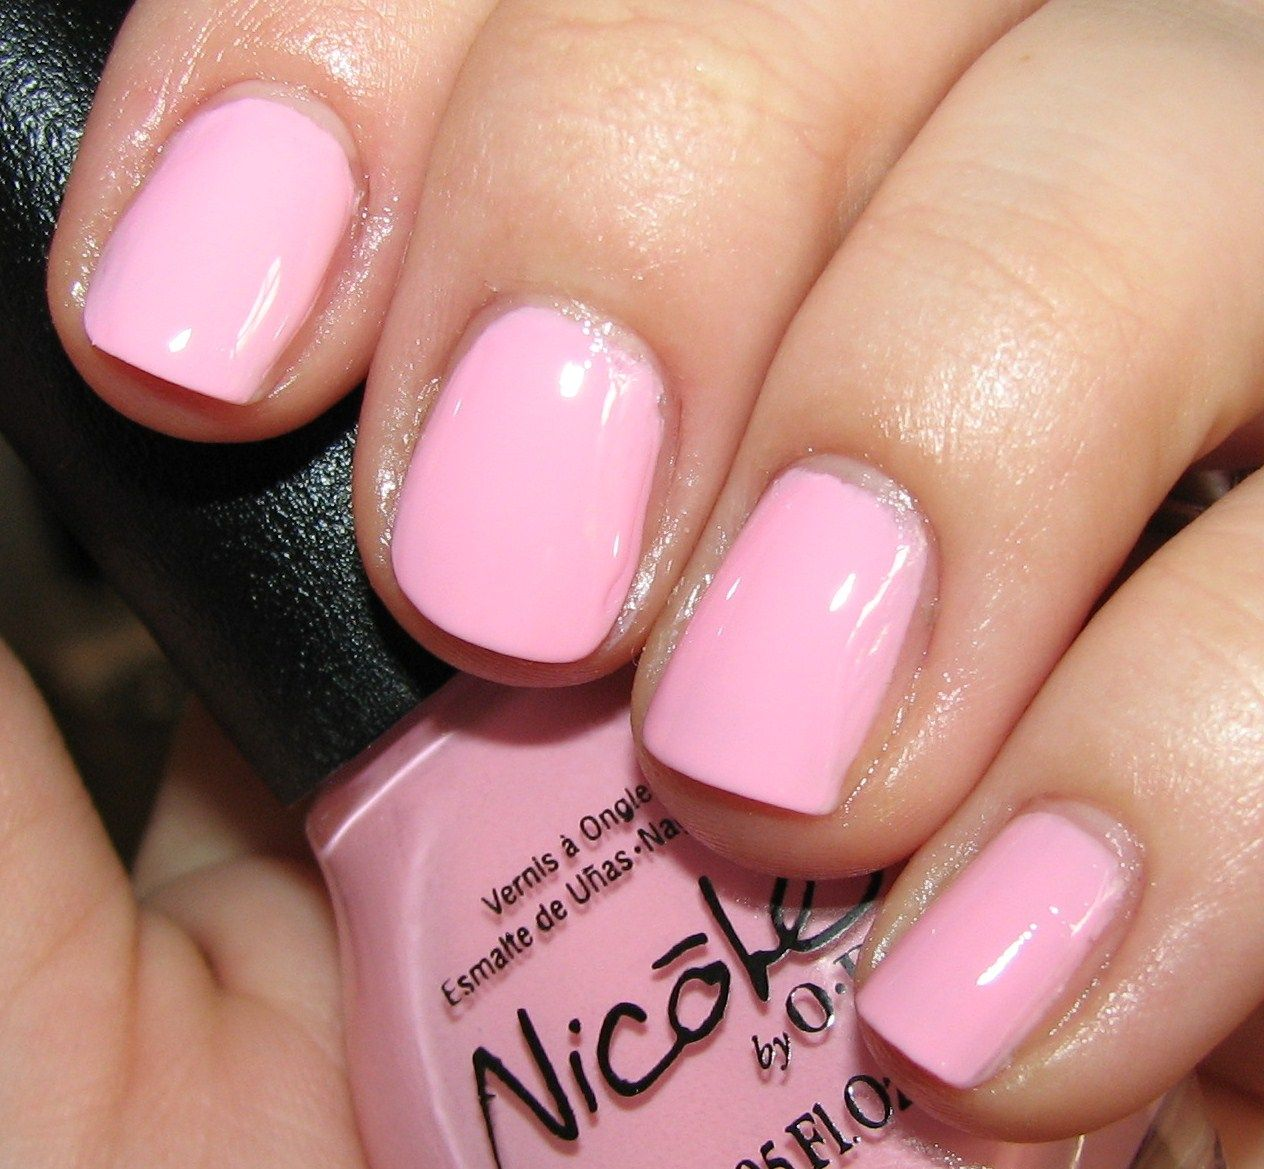 light pink nail polish is classic | Wishlist for Christmas 2014 ...